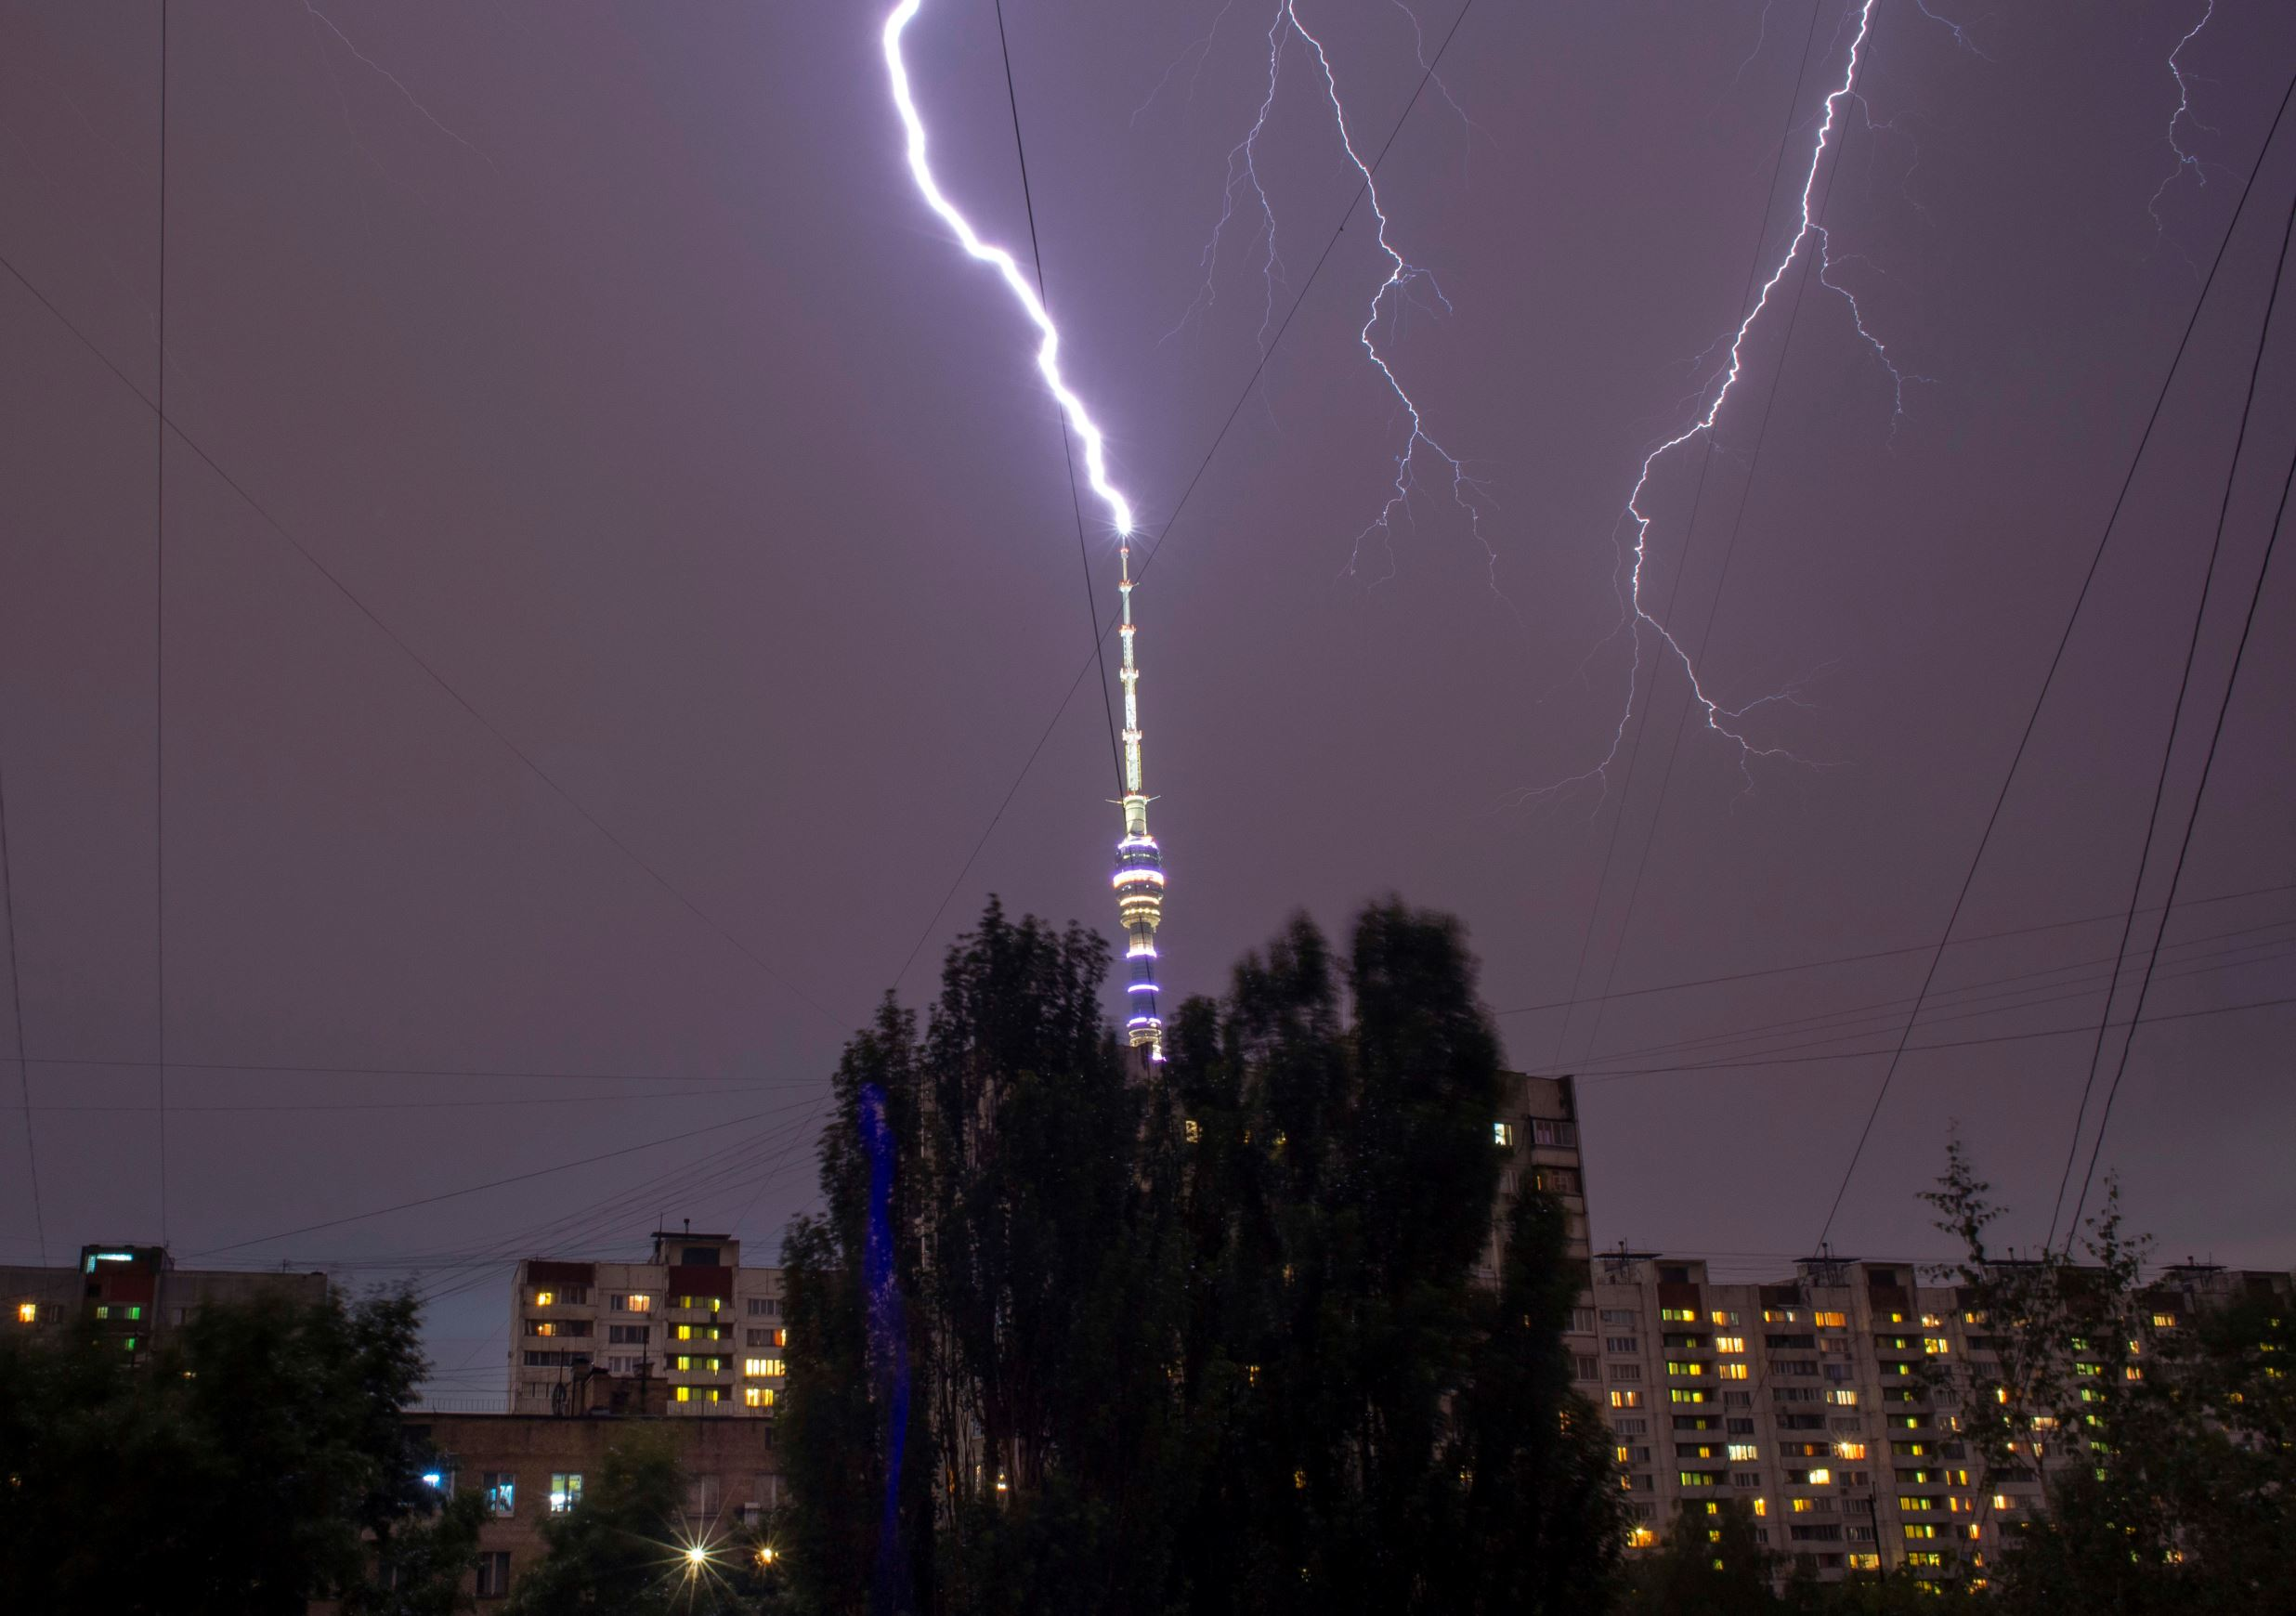 Слайд 66 из 86: Lightning is seen in the sky over the Ostankino TV tower during a storm in Moscow, Russia, Monday, July 18, 2016. (AP Photo/Alexander Zemlianichenko)